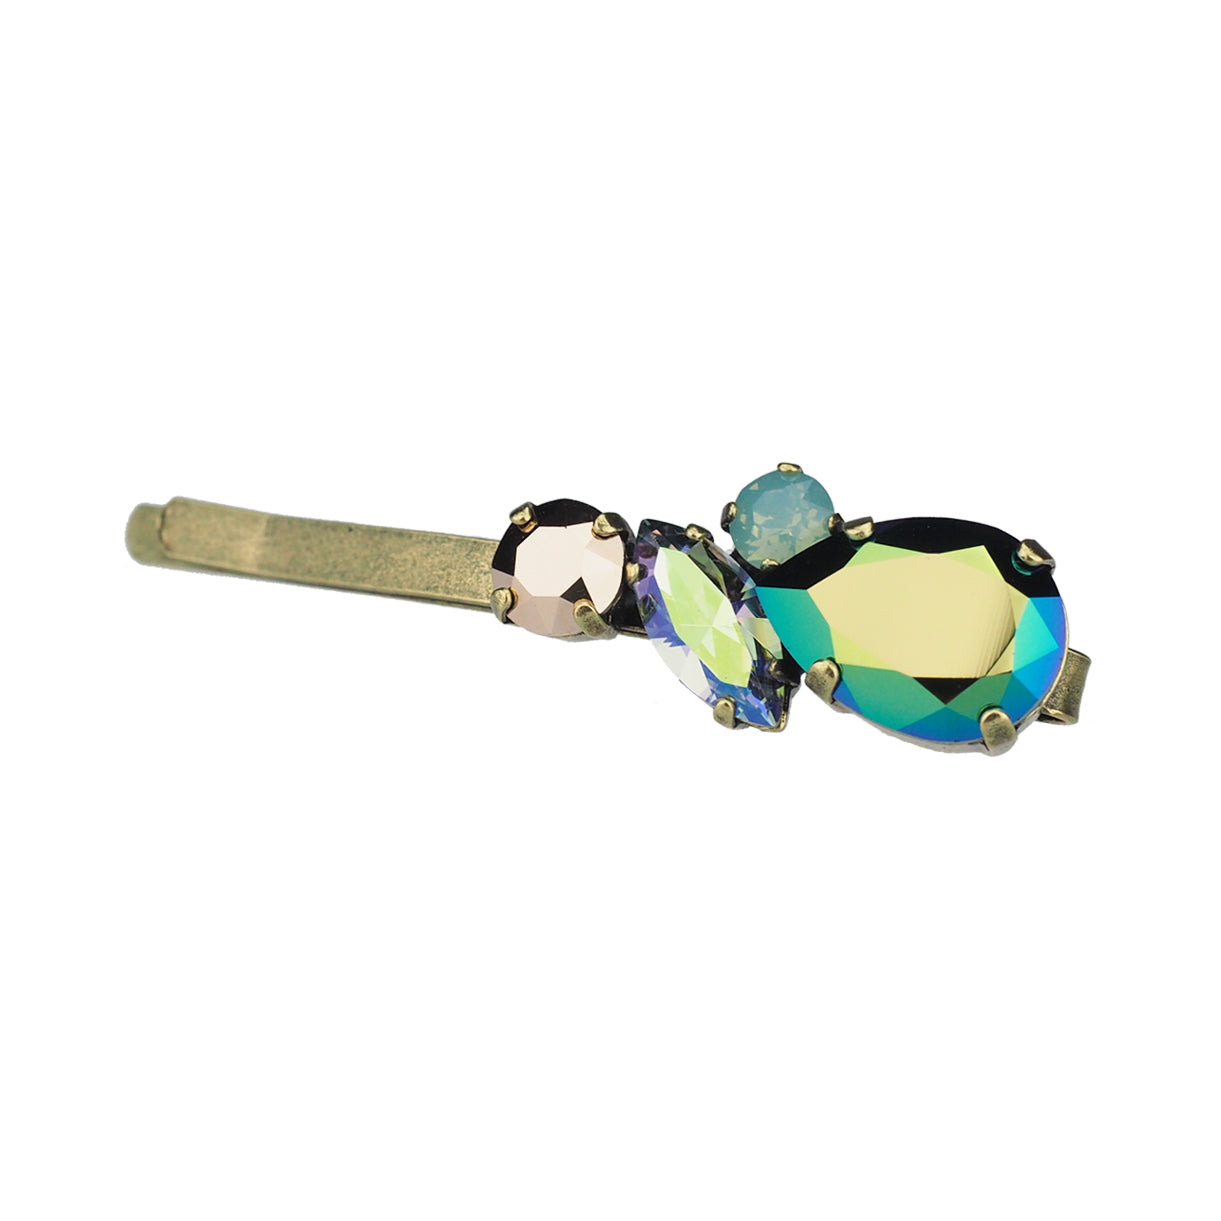 Justice Hair slide - Green